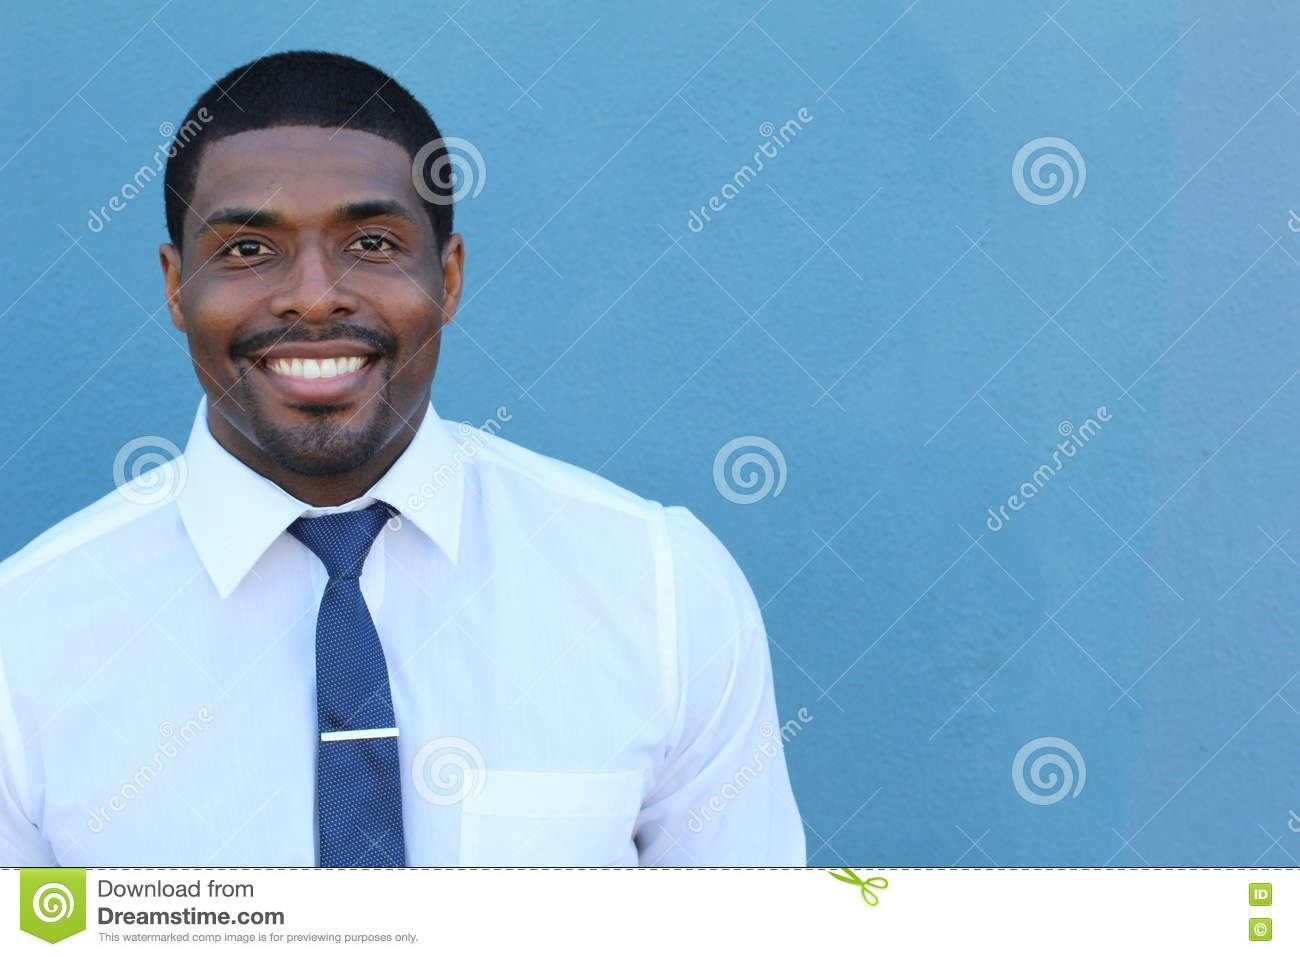 Portrait of handsome confident young African businessman standing smiling happy, looking at camera